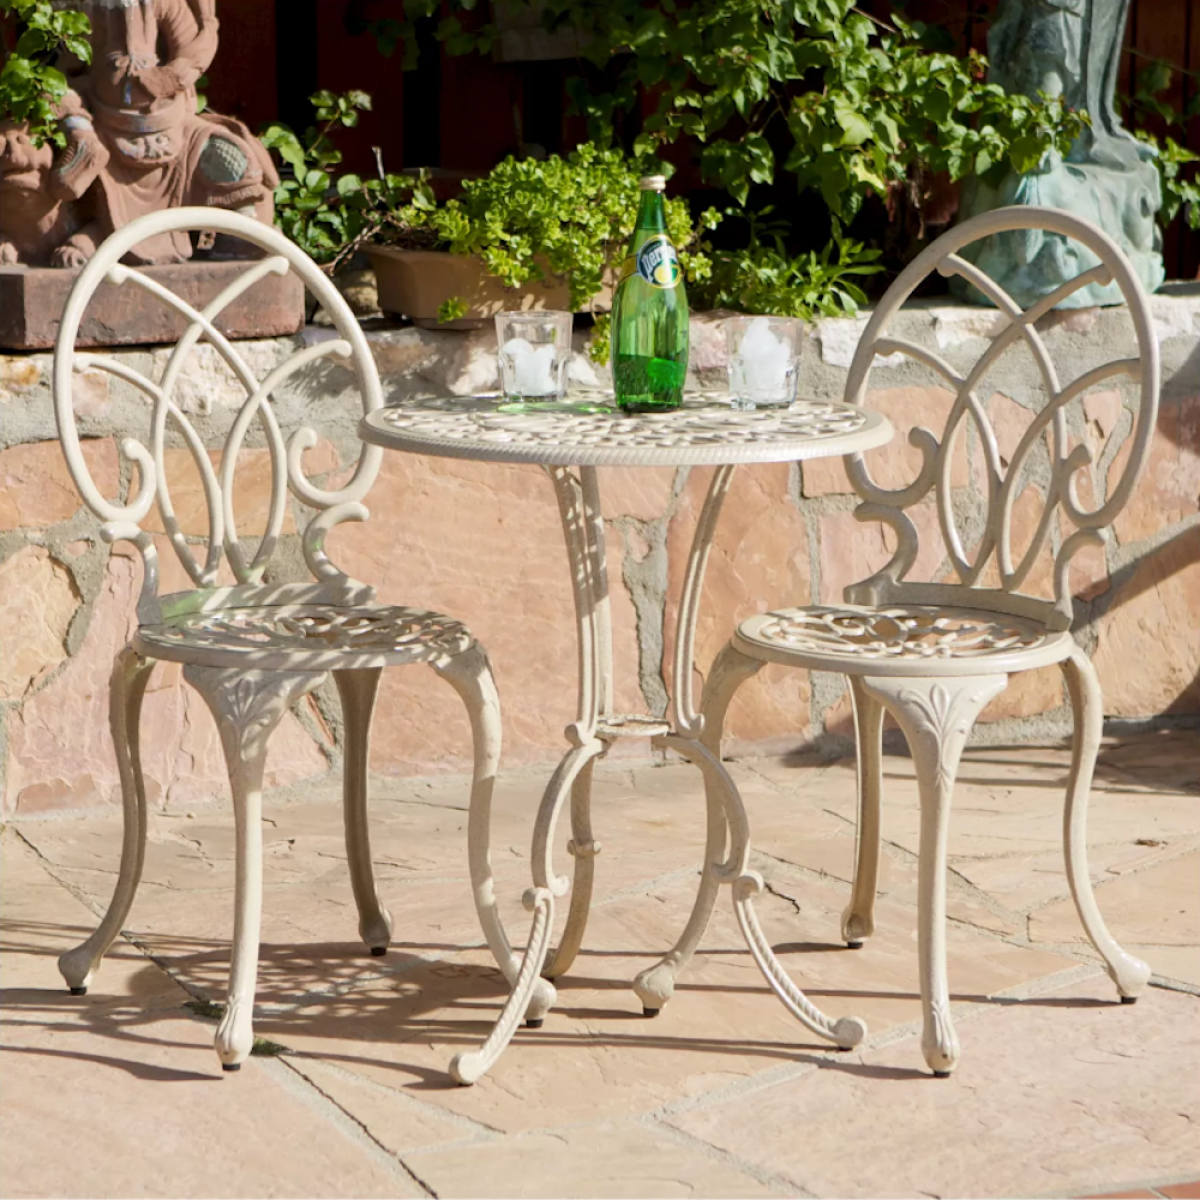 Christopher Knight Bistro Table on patio outstide with Perrier bottle and glasses on table